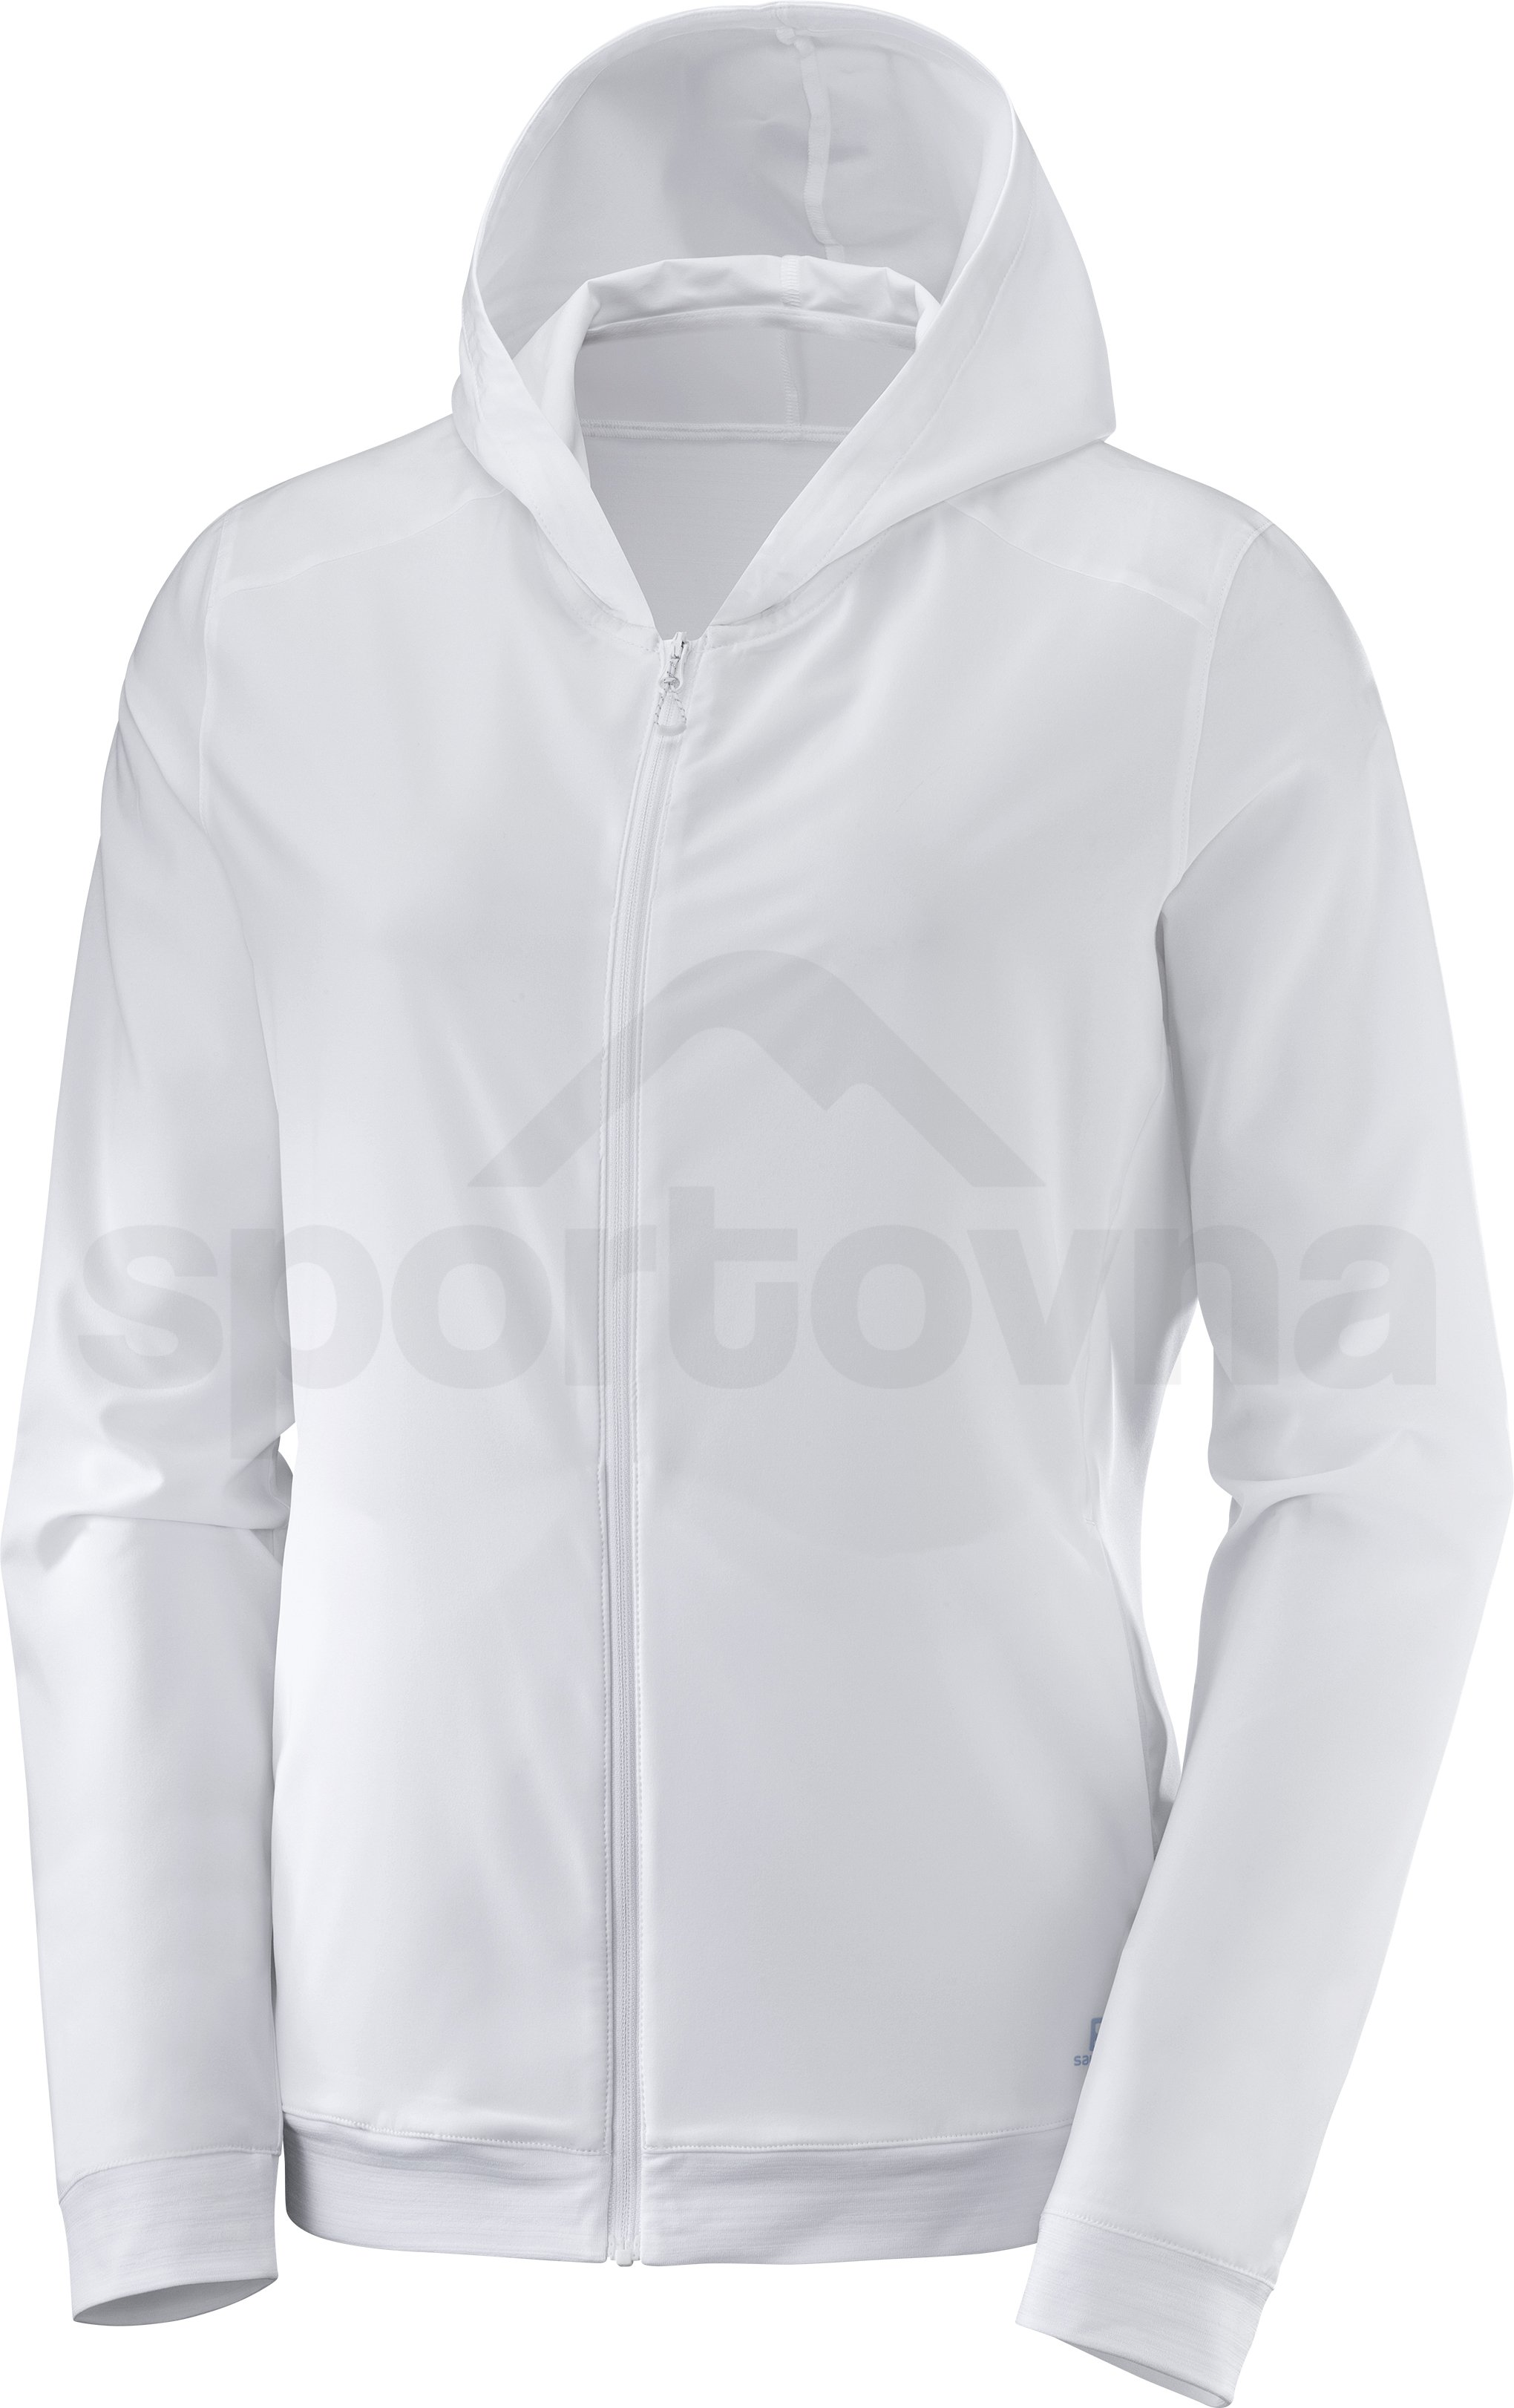 LC1034600_0_w_cometfzhoodie_white_run.jpg.originaln